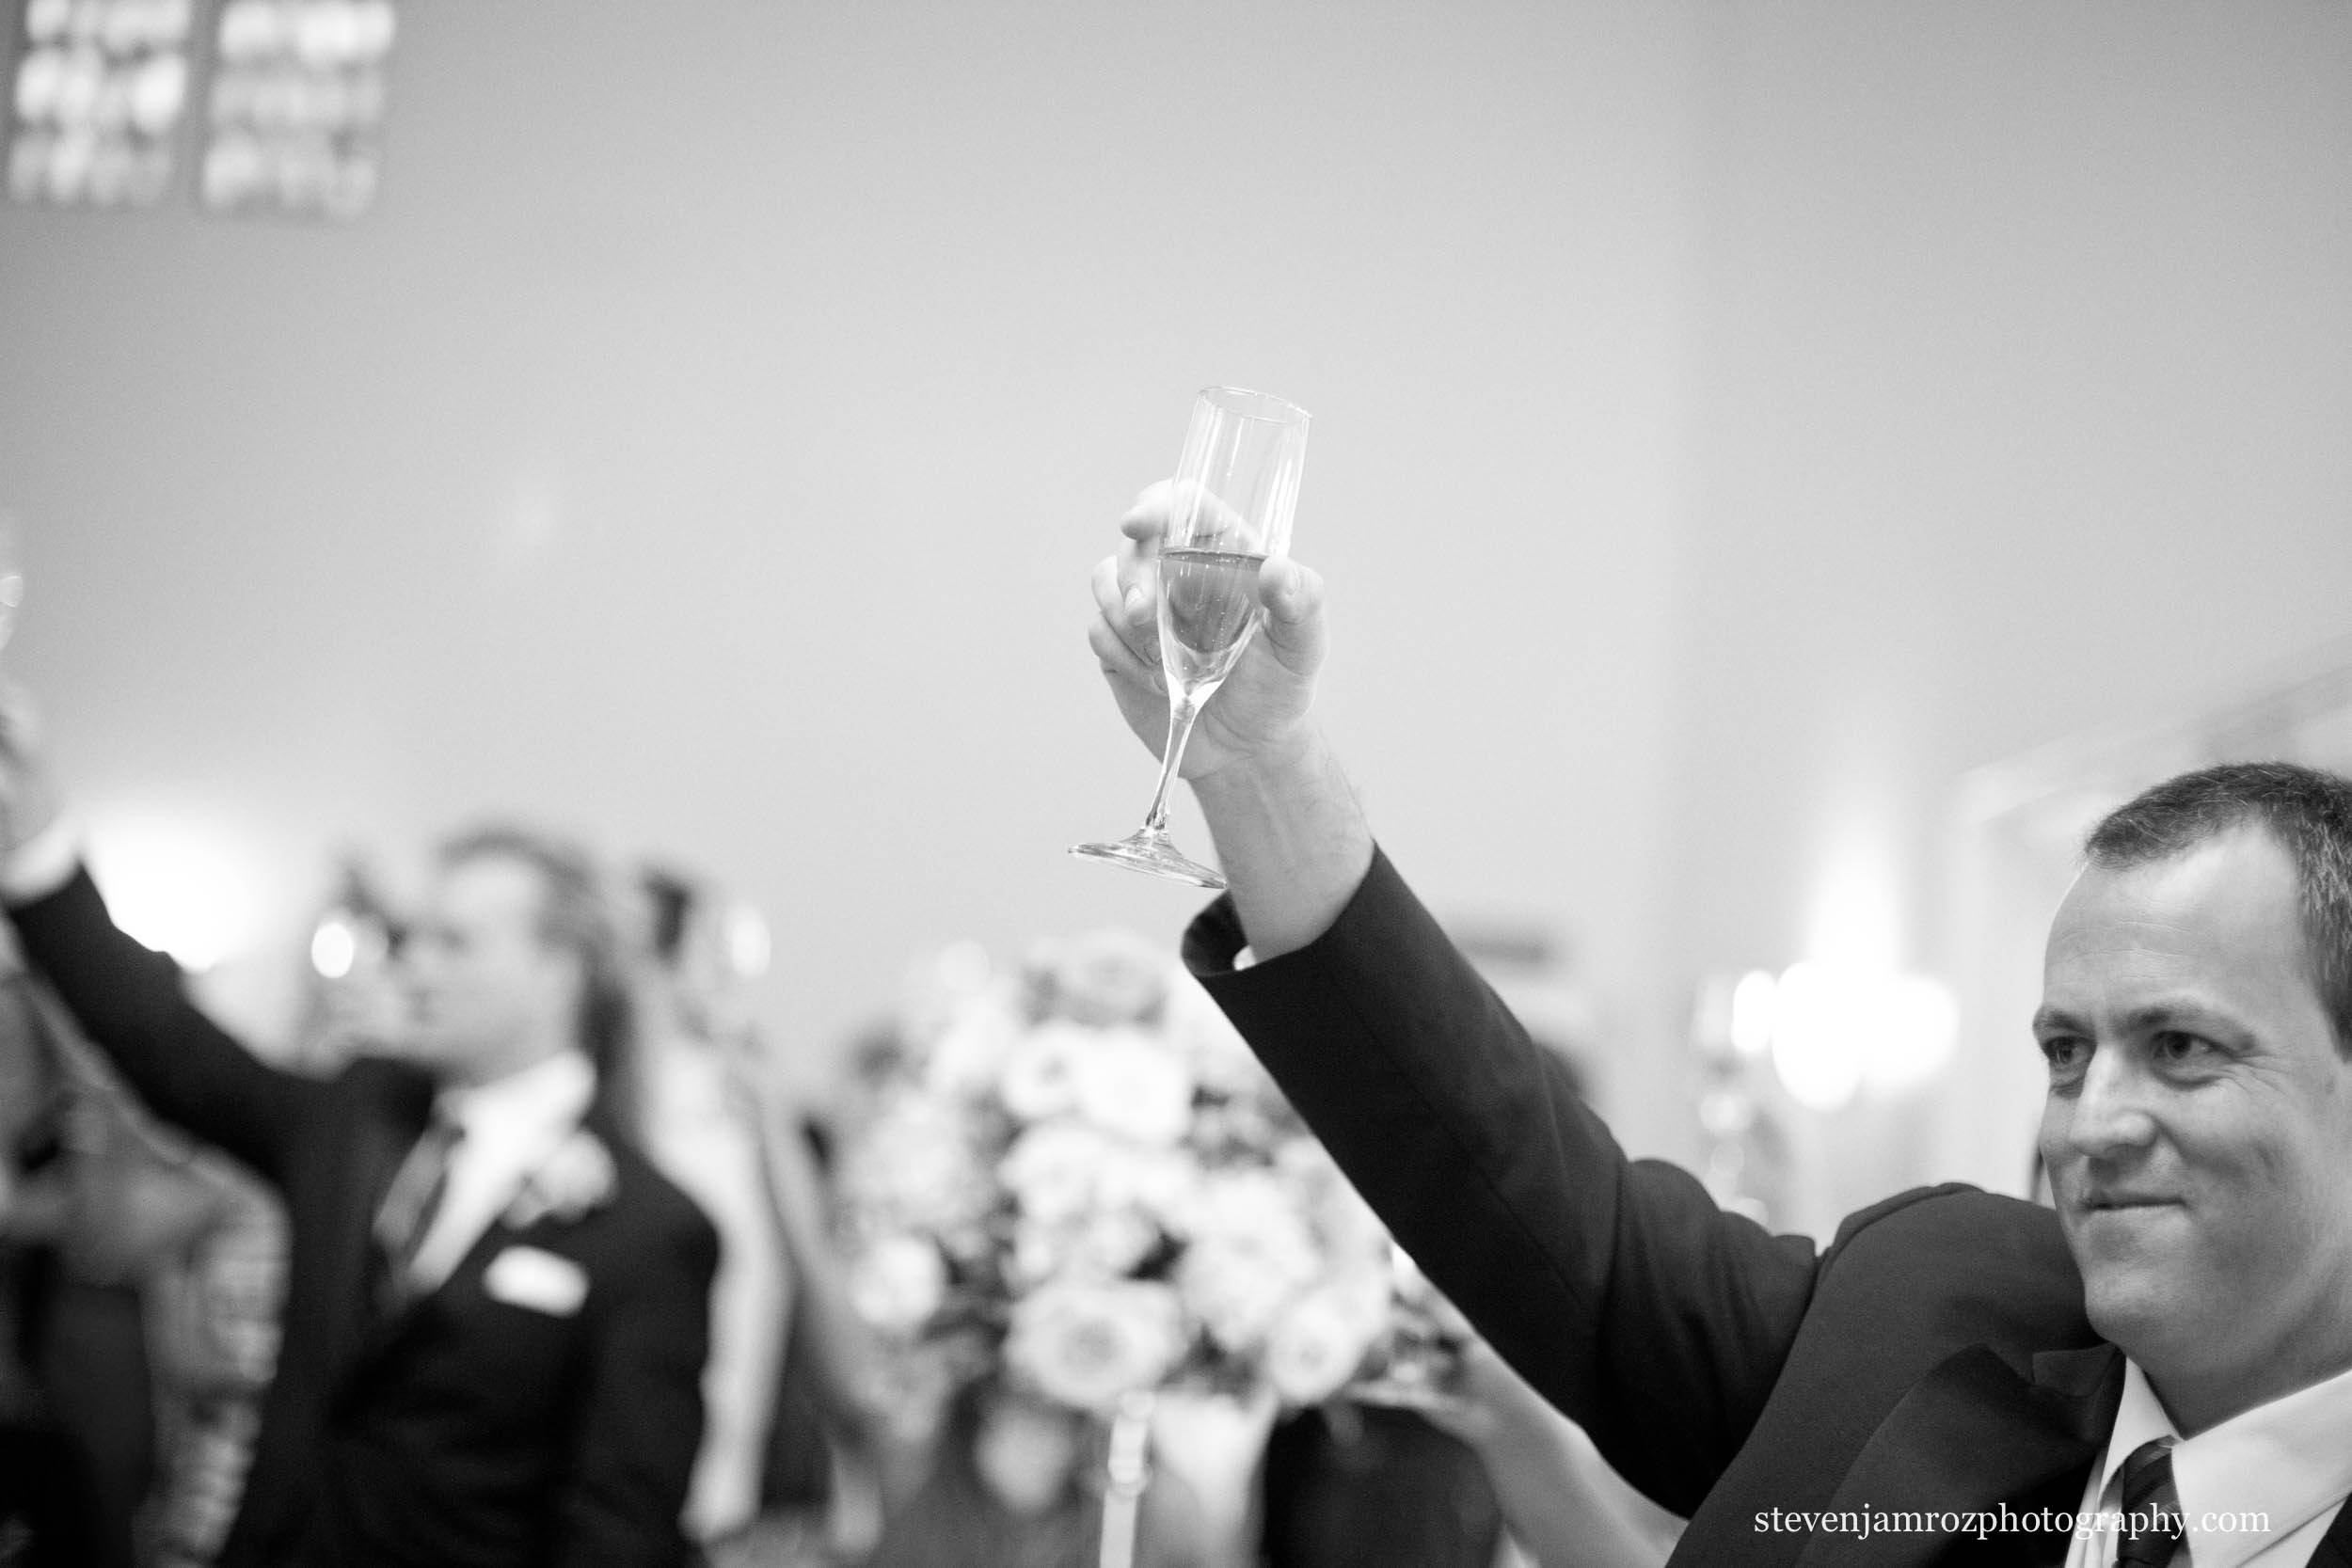 raise-a-glass-wedding-raleigh-nc-steven-jamroz-photography-0133.jpg